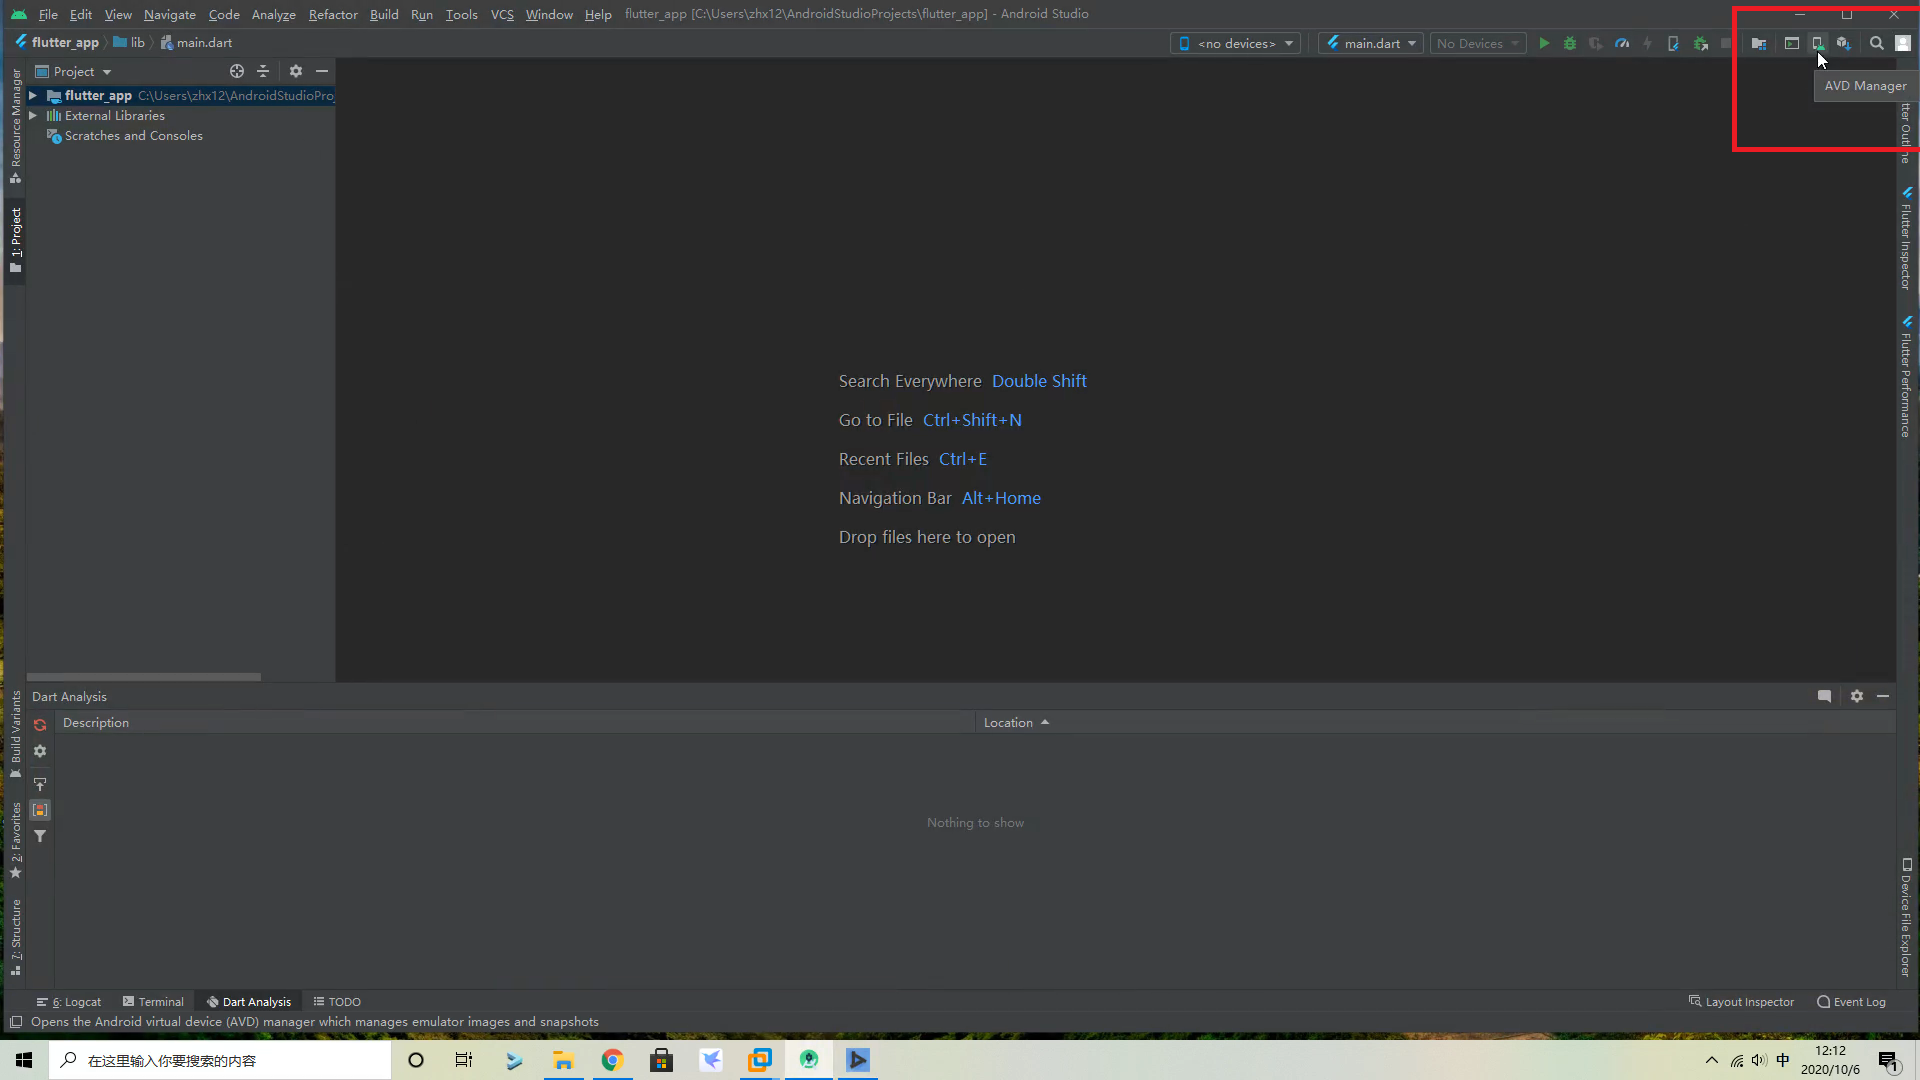 2020_10_07_android_studio_avd_manager